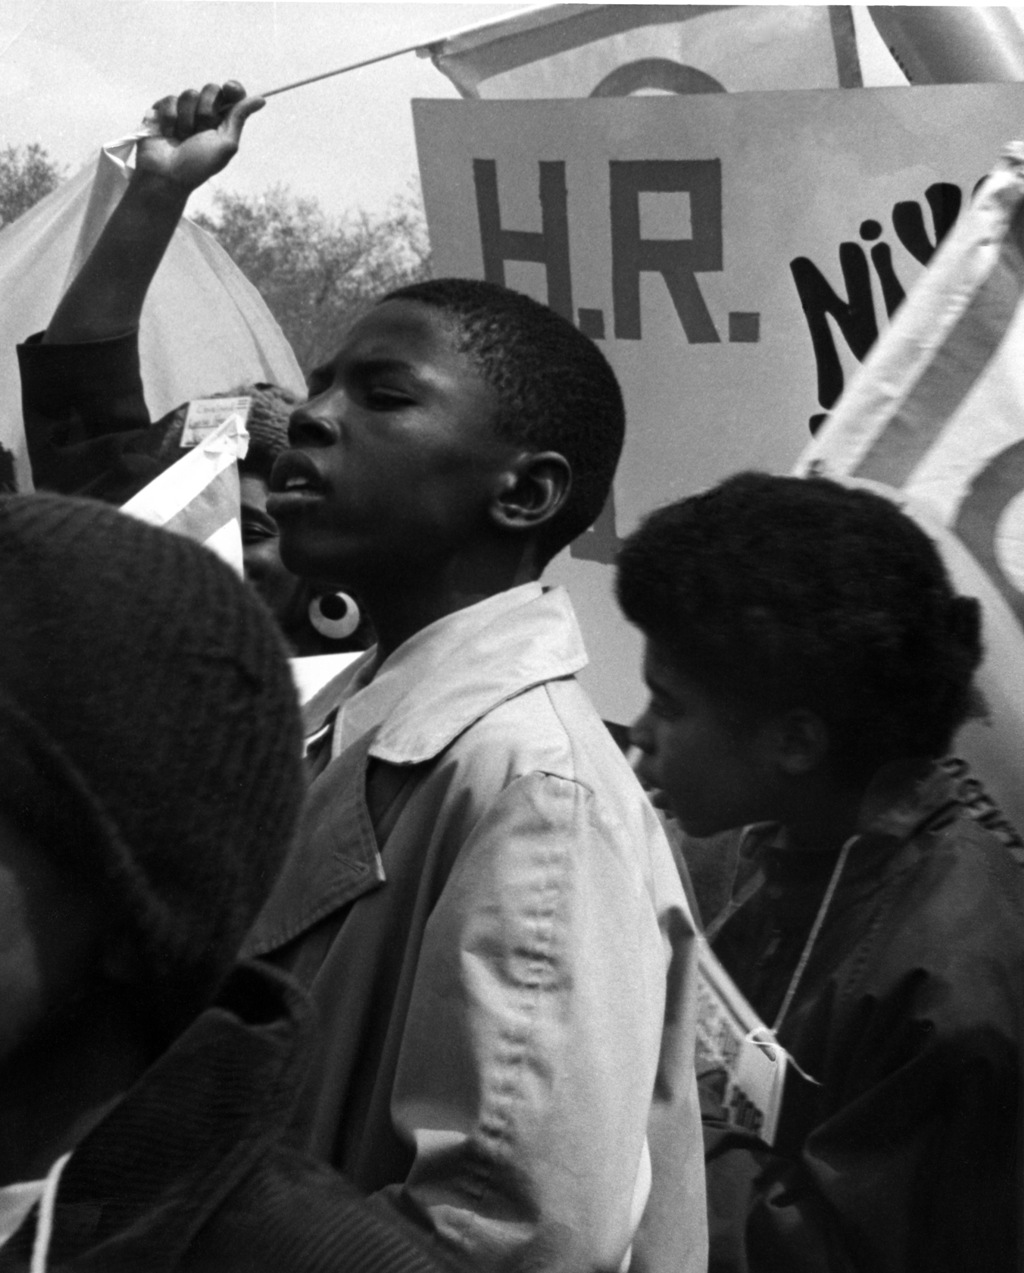 Black kids march in D.C. in 1972 for welfare reforms